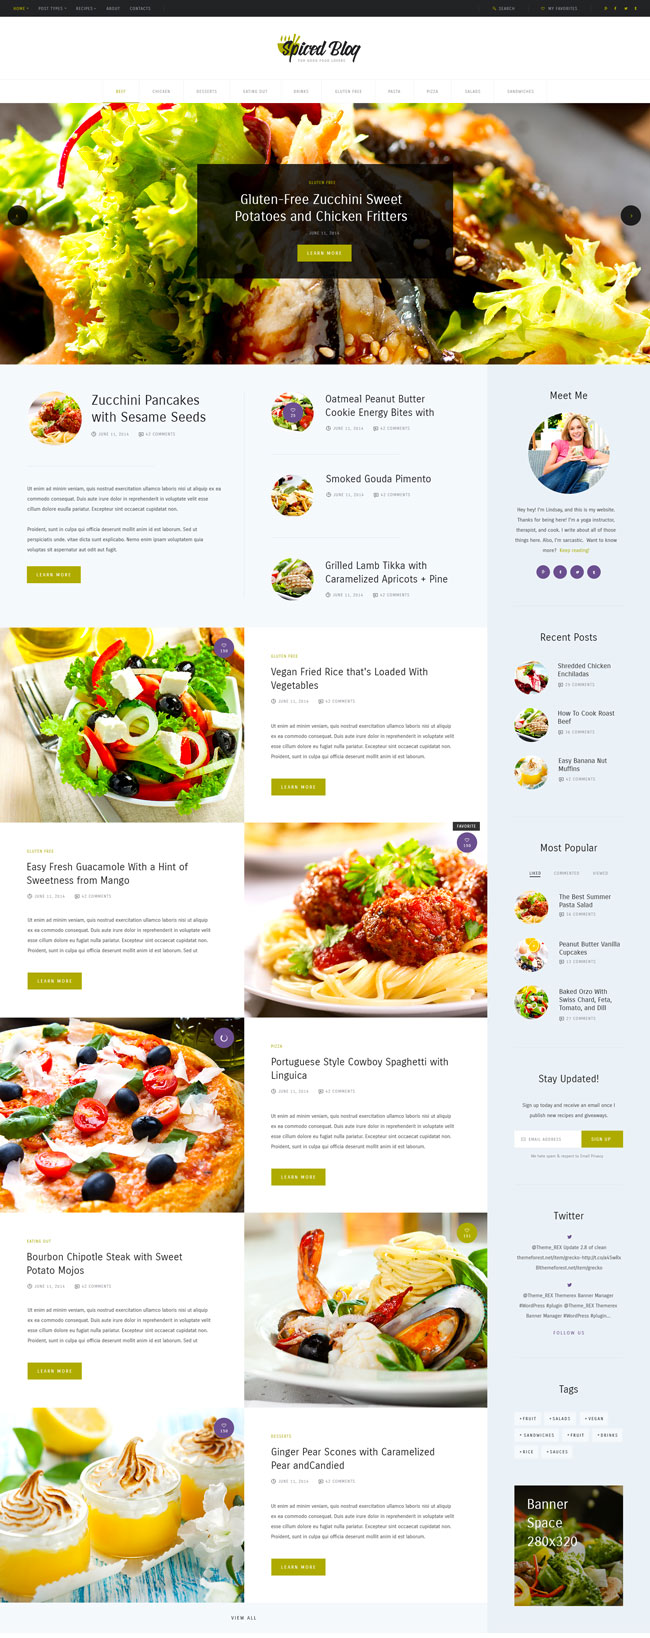 Spiced-Blog-WordPress-Personal-Blog-Theme-for-Food-Blogger